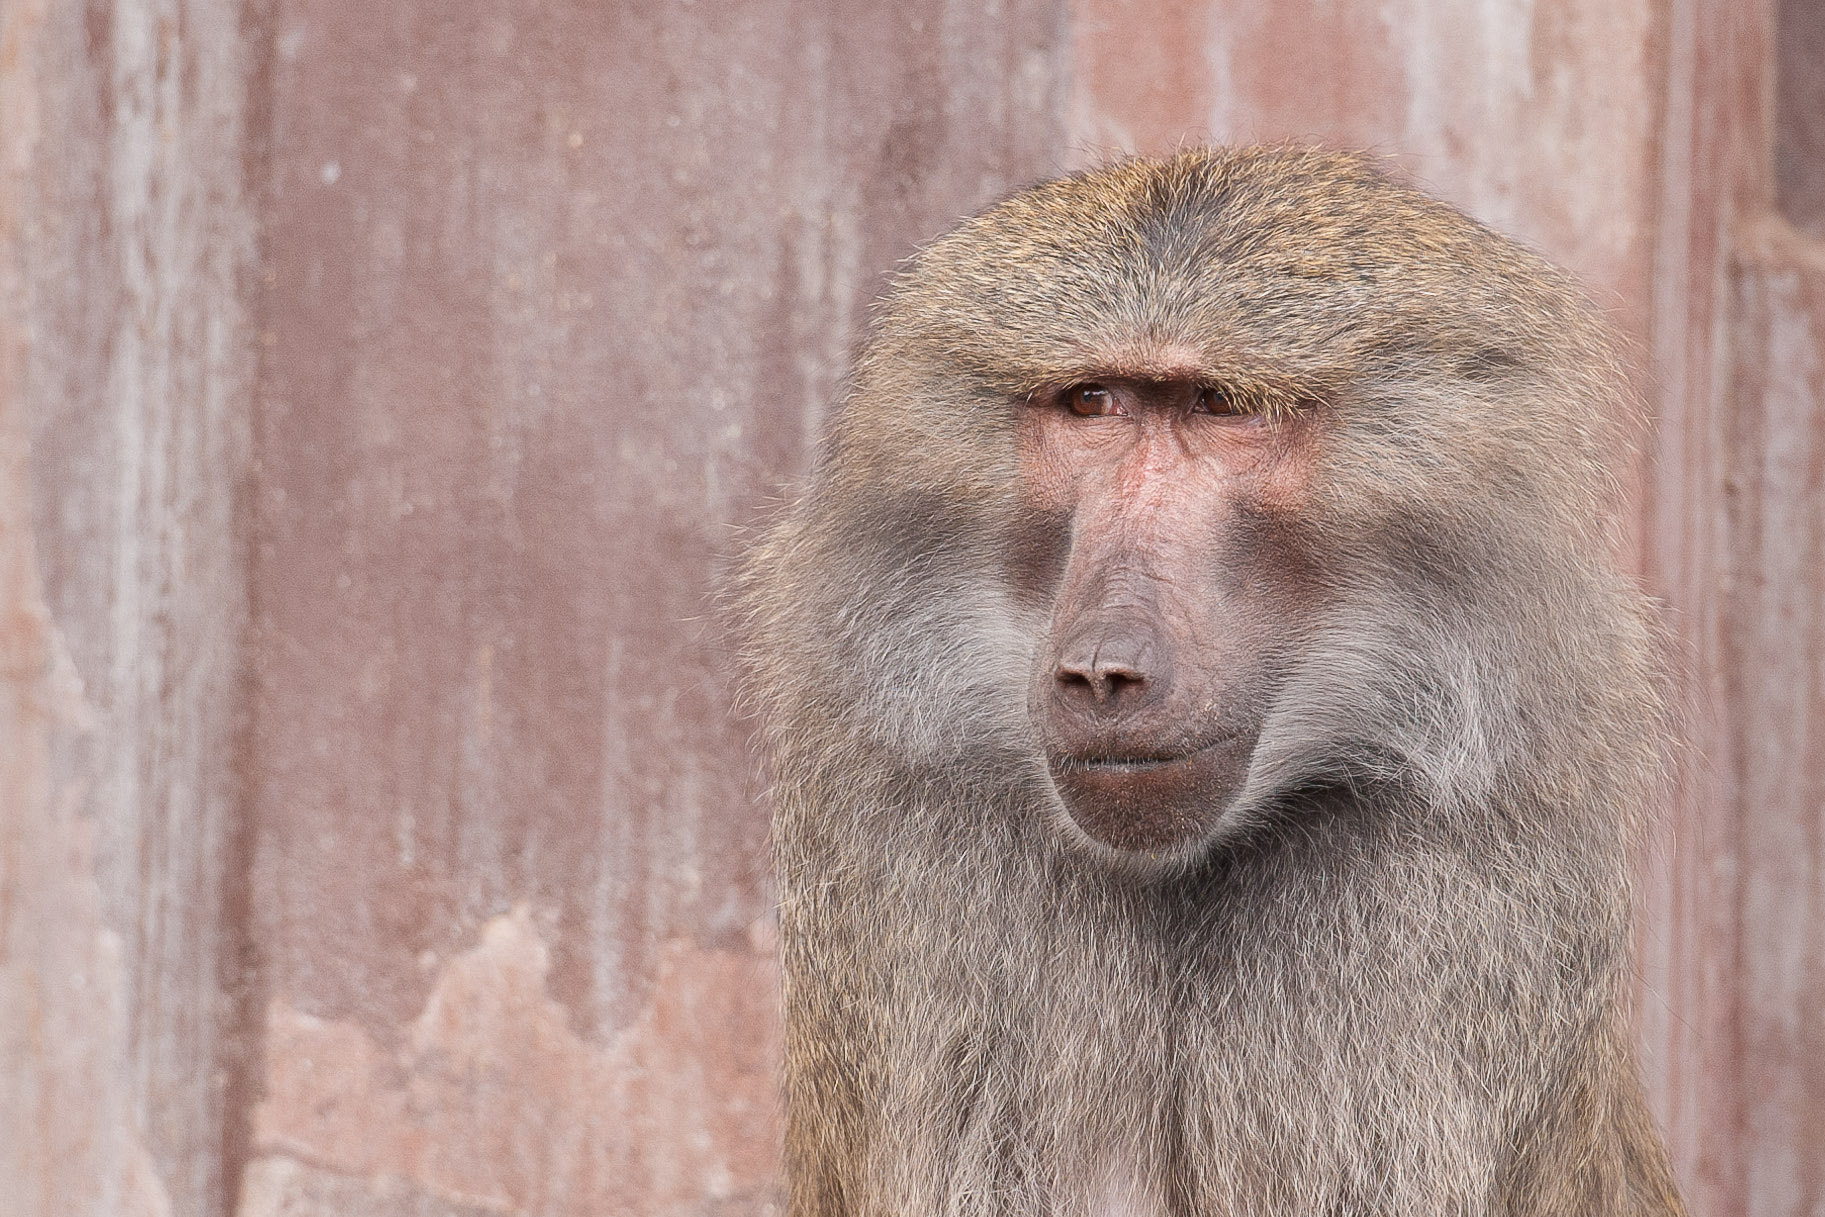 Photograph Baboon by Jan Brandt Madsen on 500px